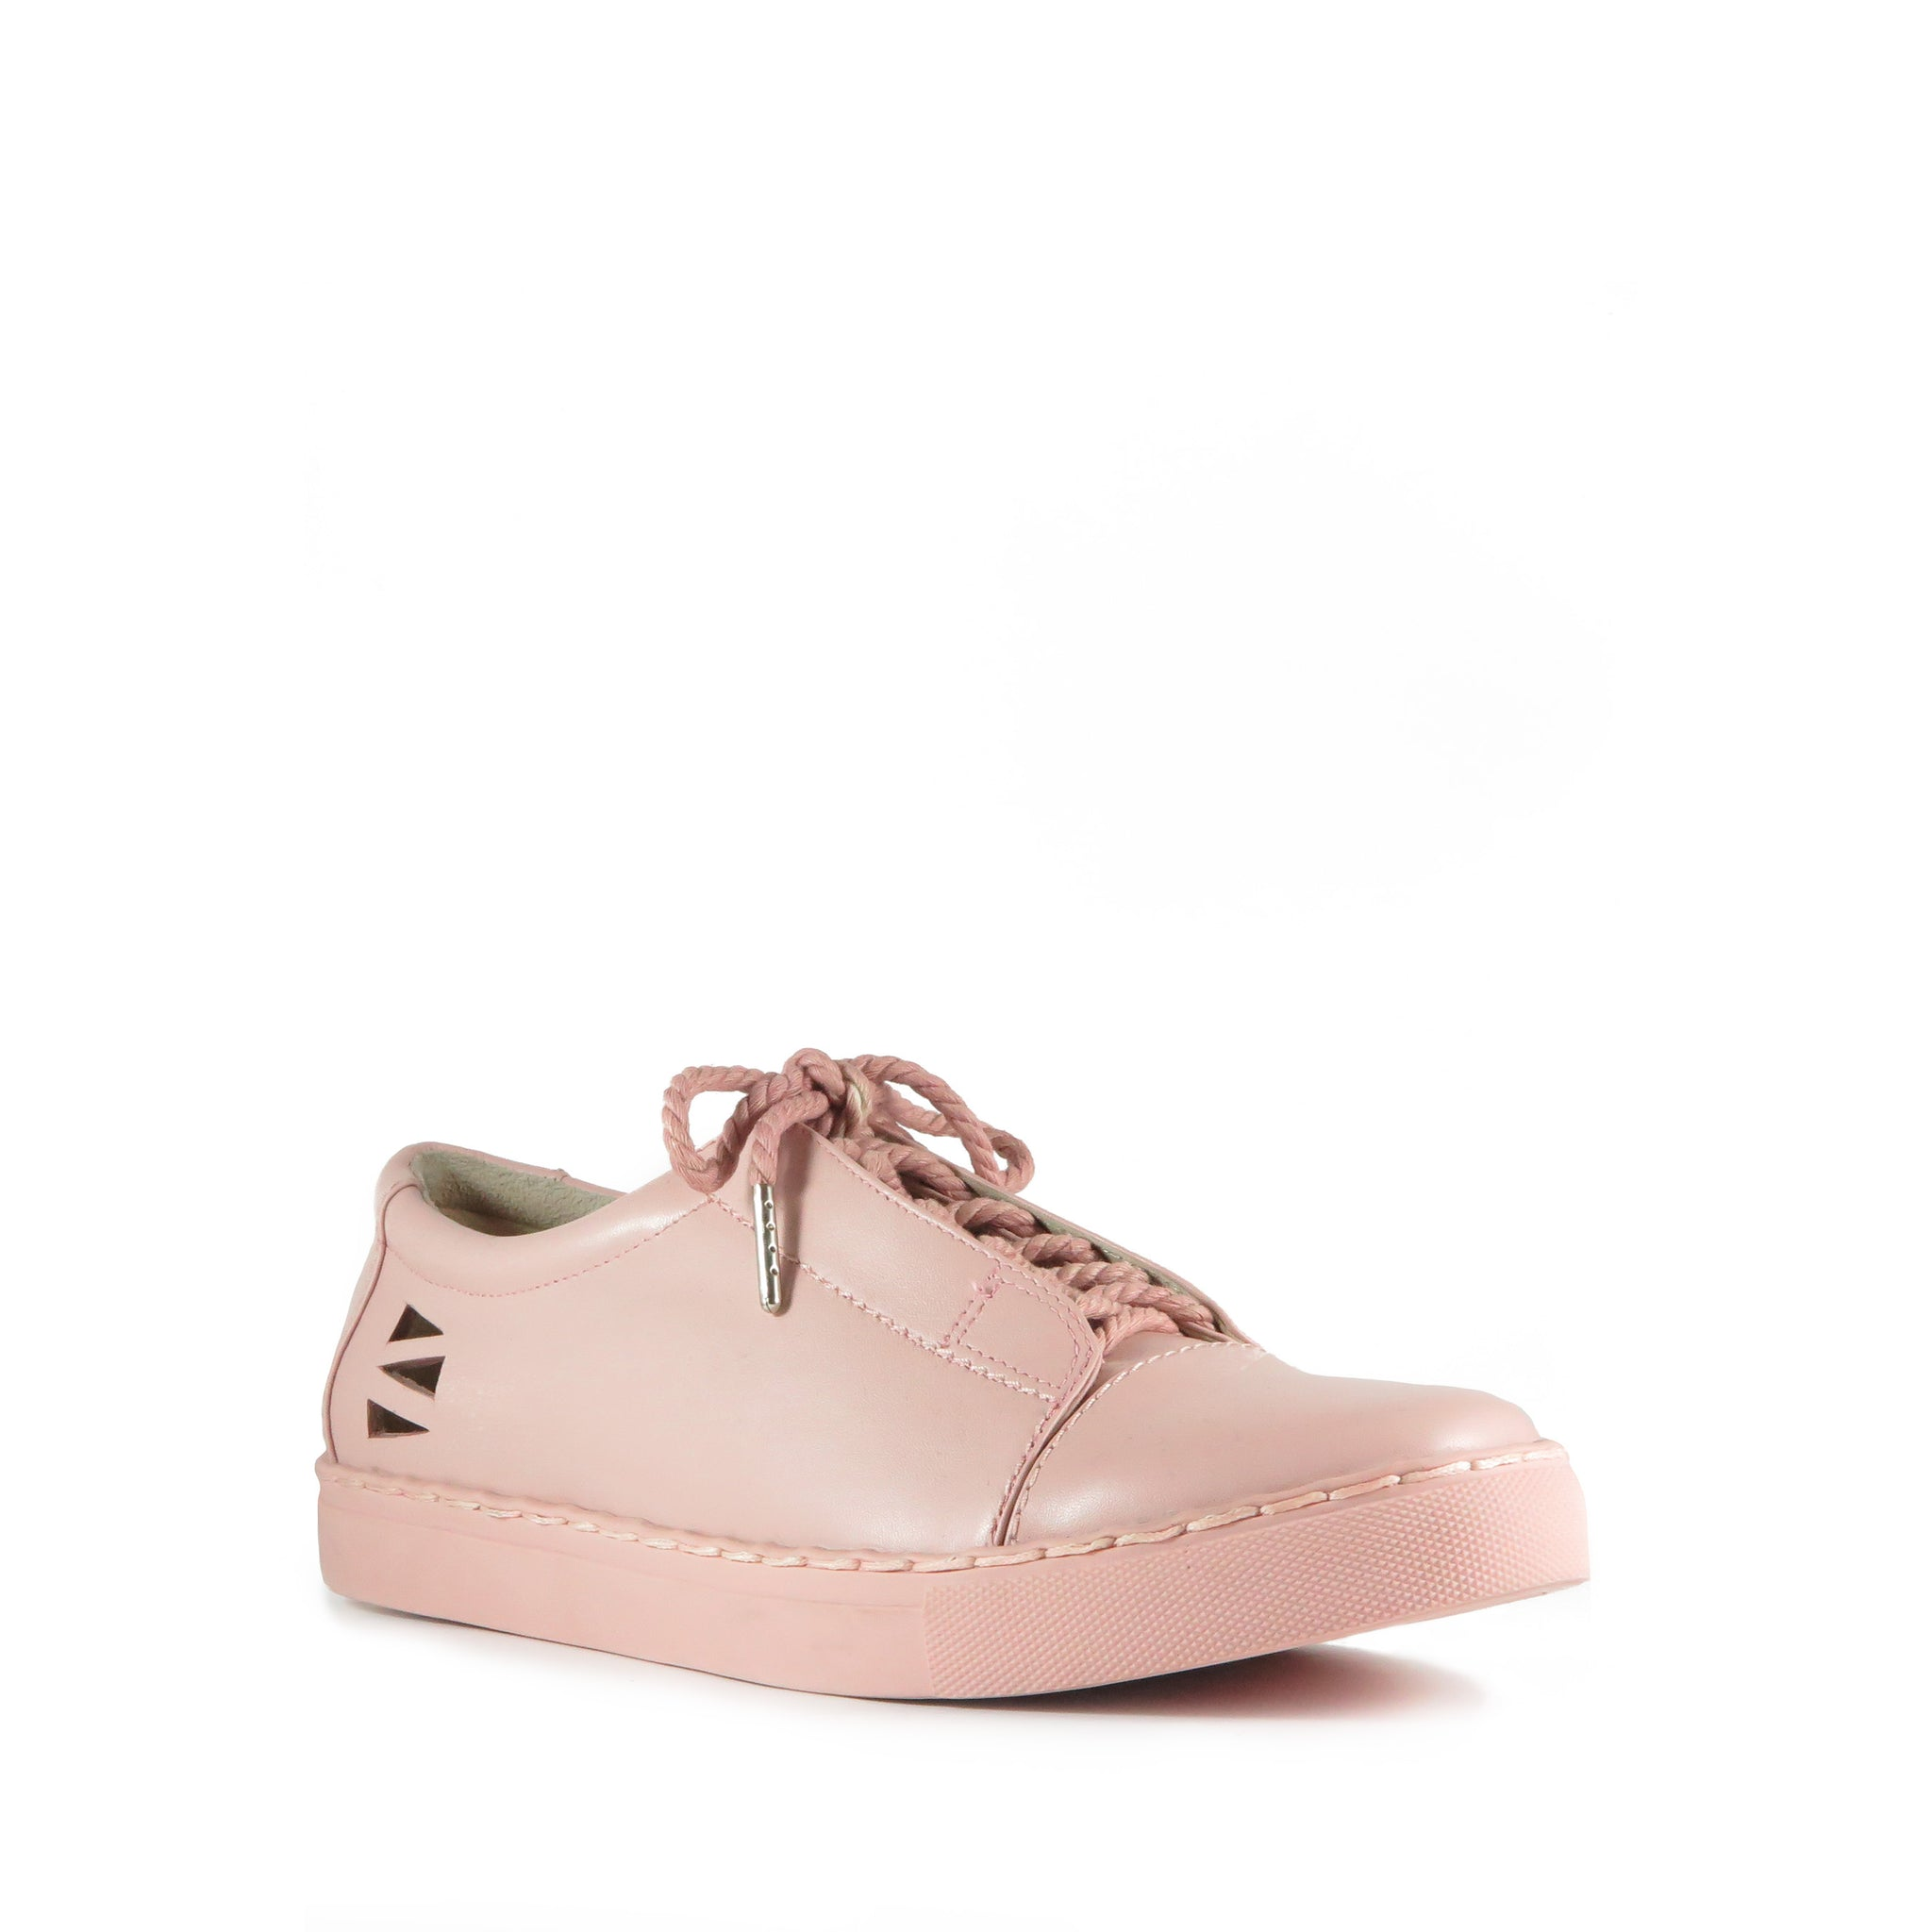 Energy, pink leather sneakers, pink sole, pom pom, Chaos & Harmony, Shibusa, New Zealand fashion